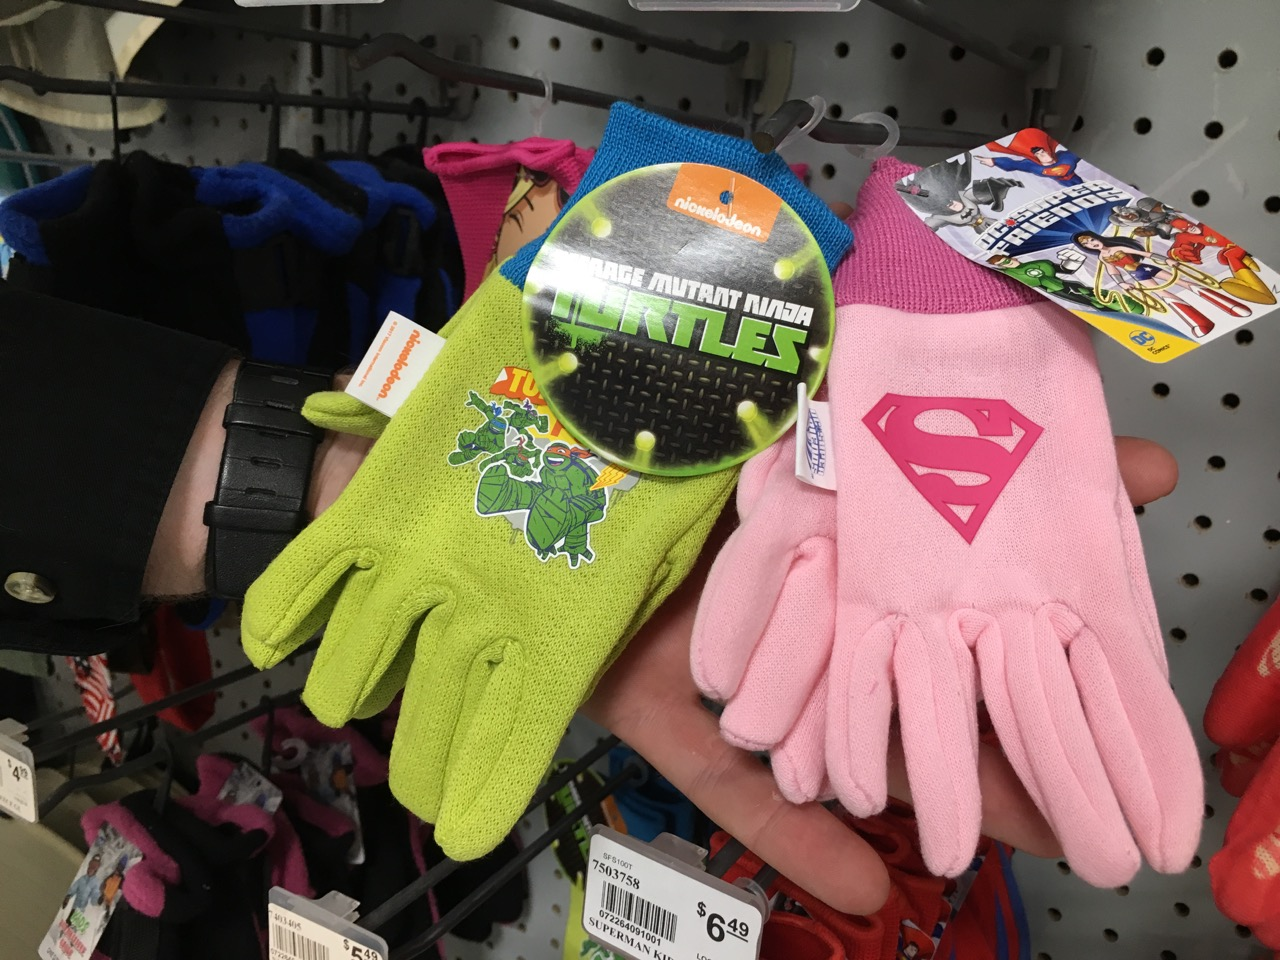 Gardening gloves for kids